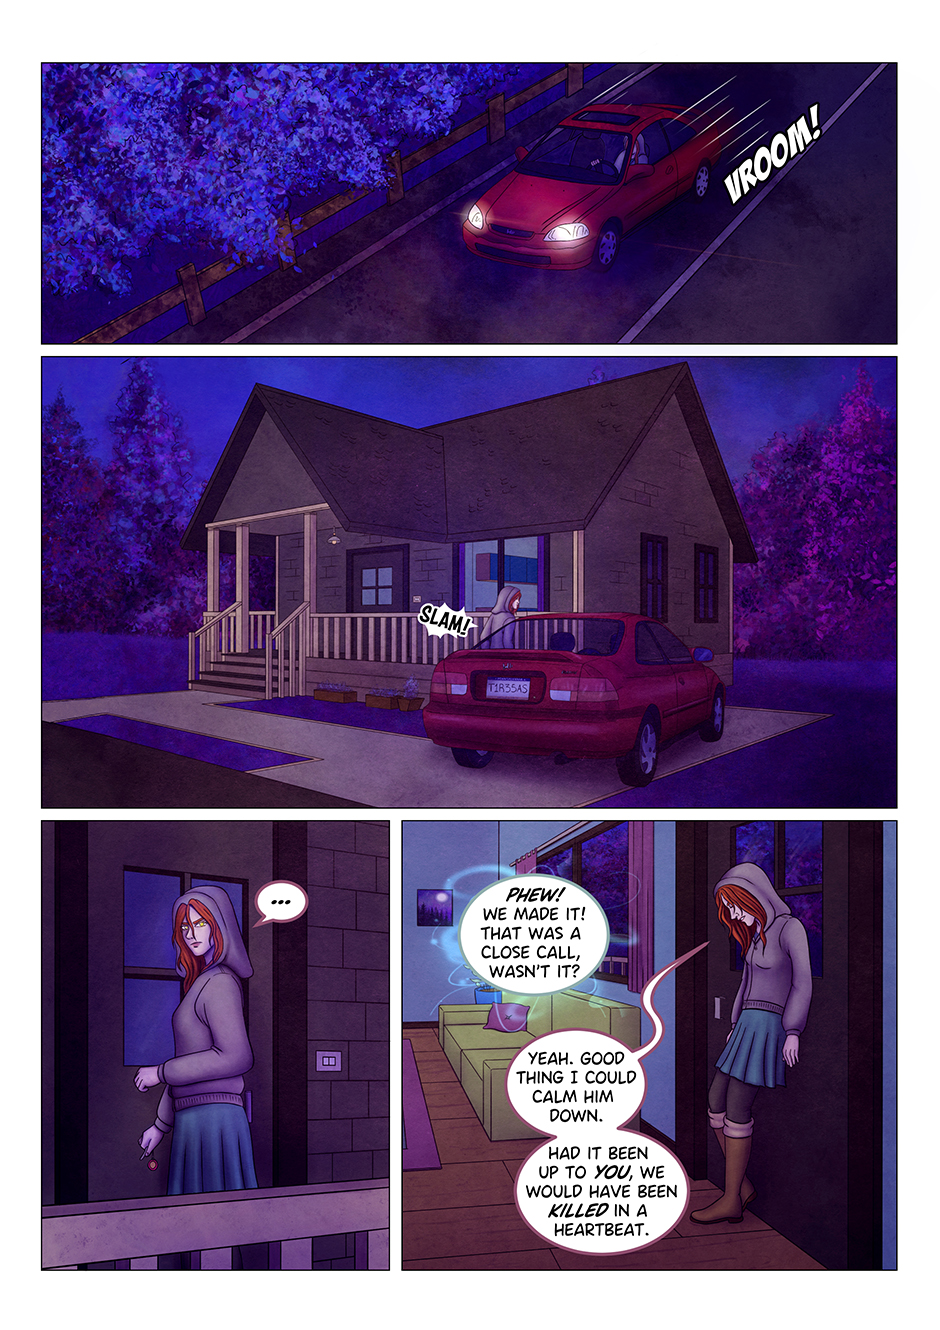 """A red car speeds down the road. A few moment later, the same car can be seen parked in front of a house in the outskirts of the town. Tyresias gets out of the car and slams the door. She approaches the house and, before entering, she looks around to make sure nobody is following her, eyes glowing in the dark. Once she's inside the house, she closes the door and leans against it, exhausted. """"Phew! We made it! That was a close call, wasn't it?"""" says a mysterious, disembodied voice. She doesn't look pleased: """"Yeah. Good thing I could calm him down. Had it been up to you, we would have been killed in a heartbeat""""."""